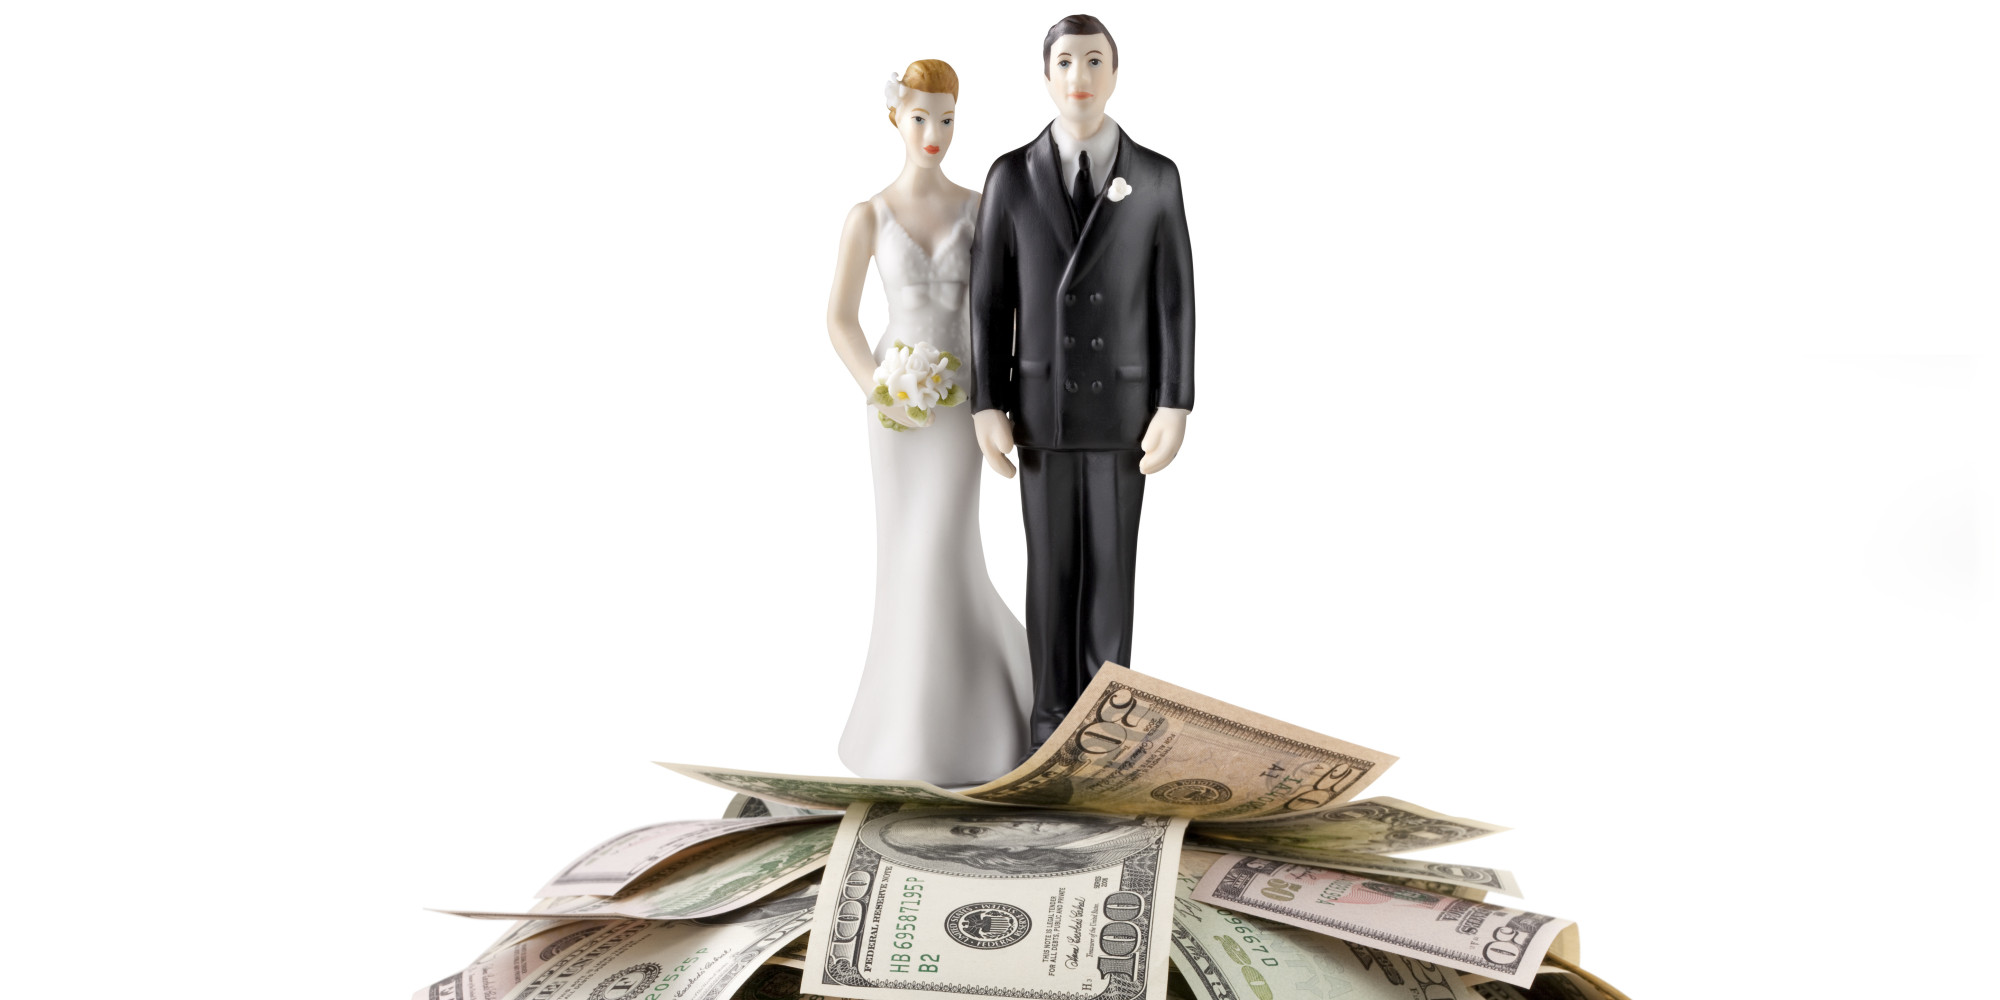 Effect of Money on Marriage